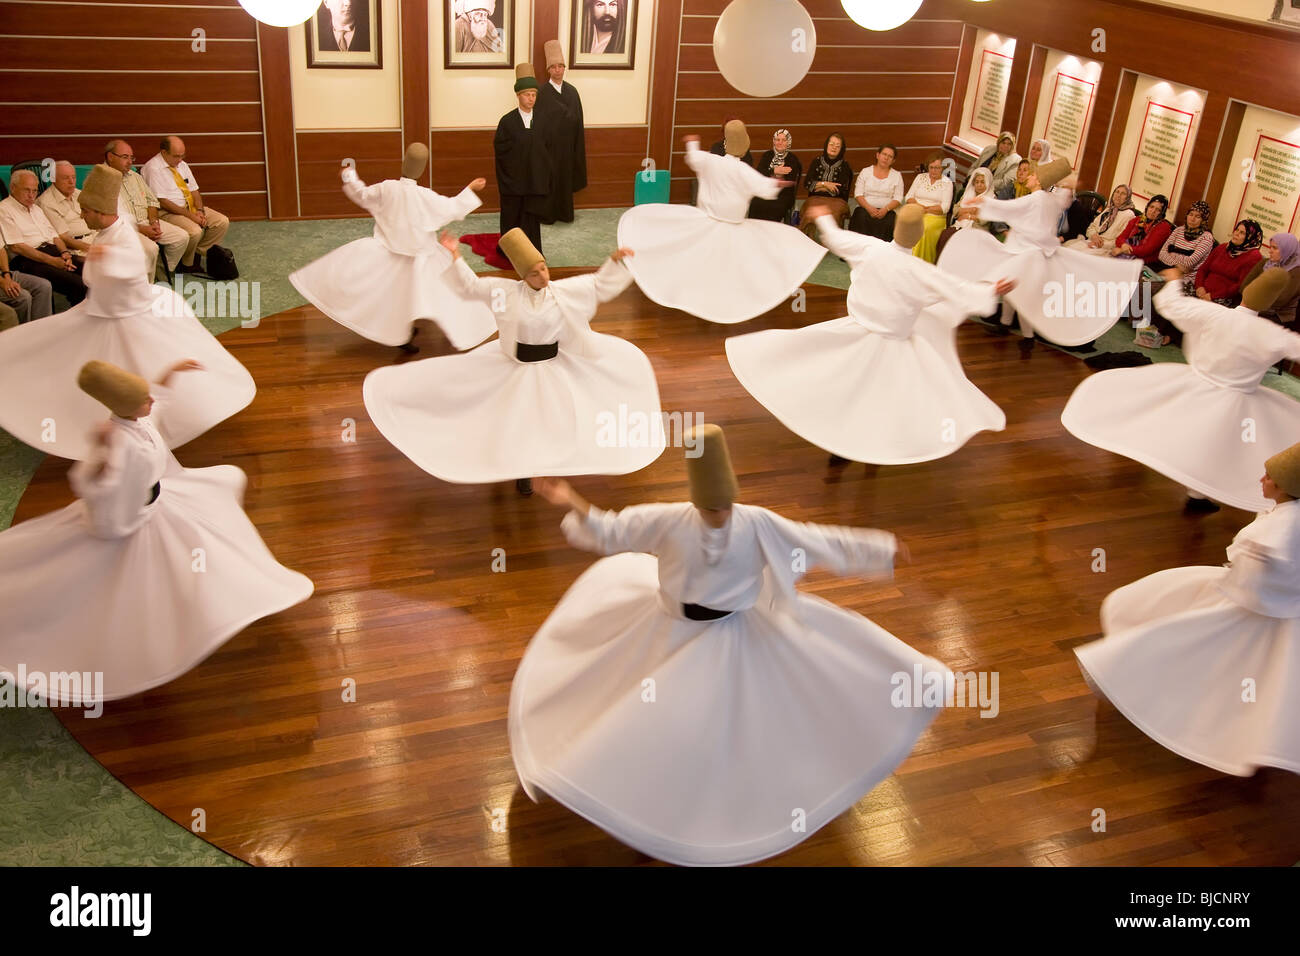 Whirling Dervishes, Istanbul. Turkey - Stock Image